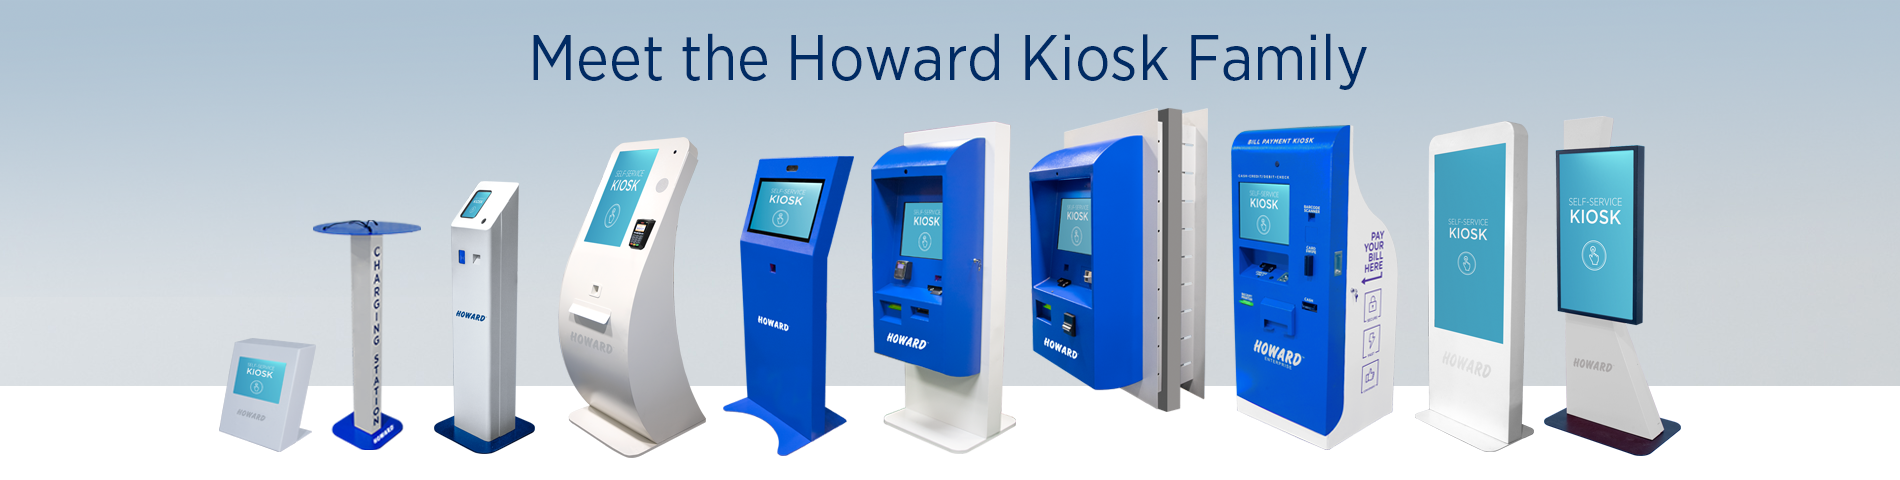 Meet the Family of Howard Education Kiosks